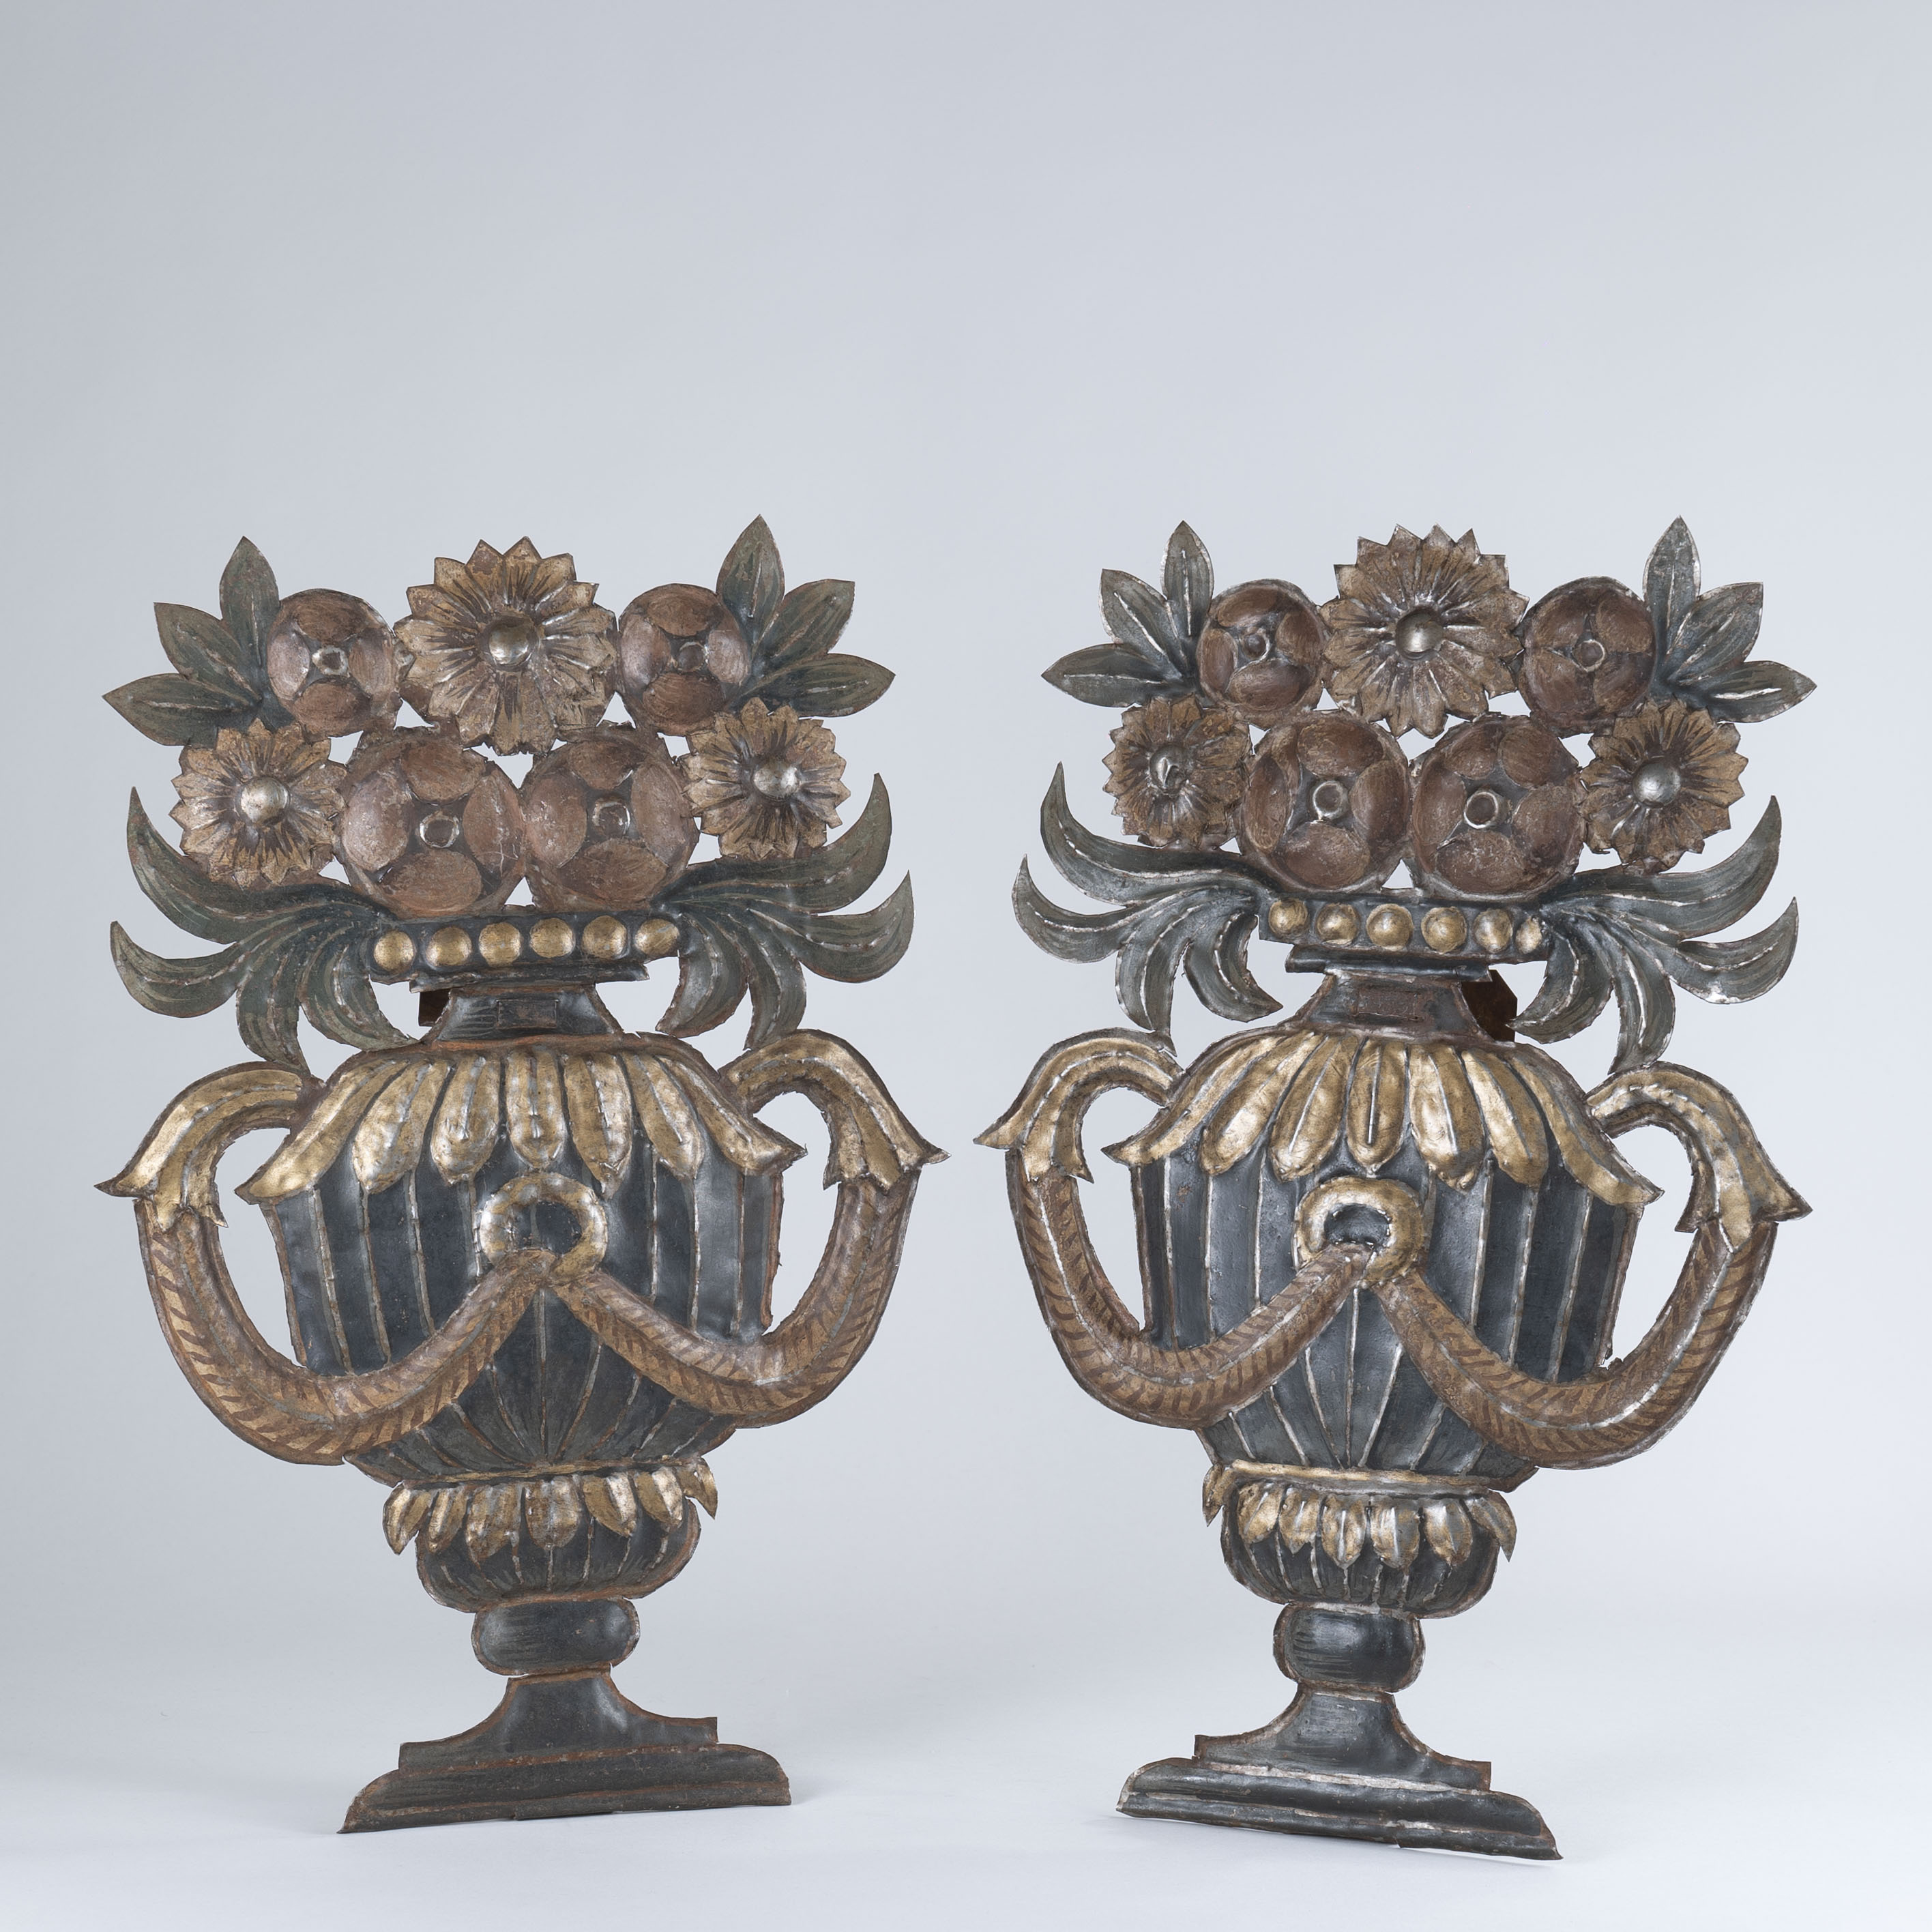 Pair of 18th Century French Tole Painted Wall Flower Vases